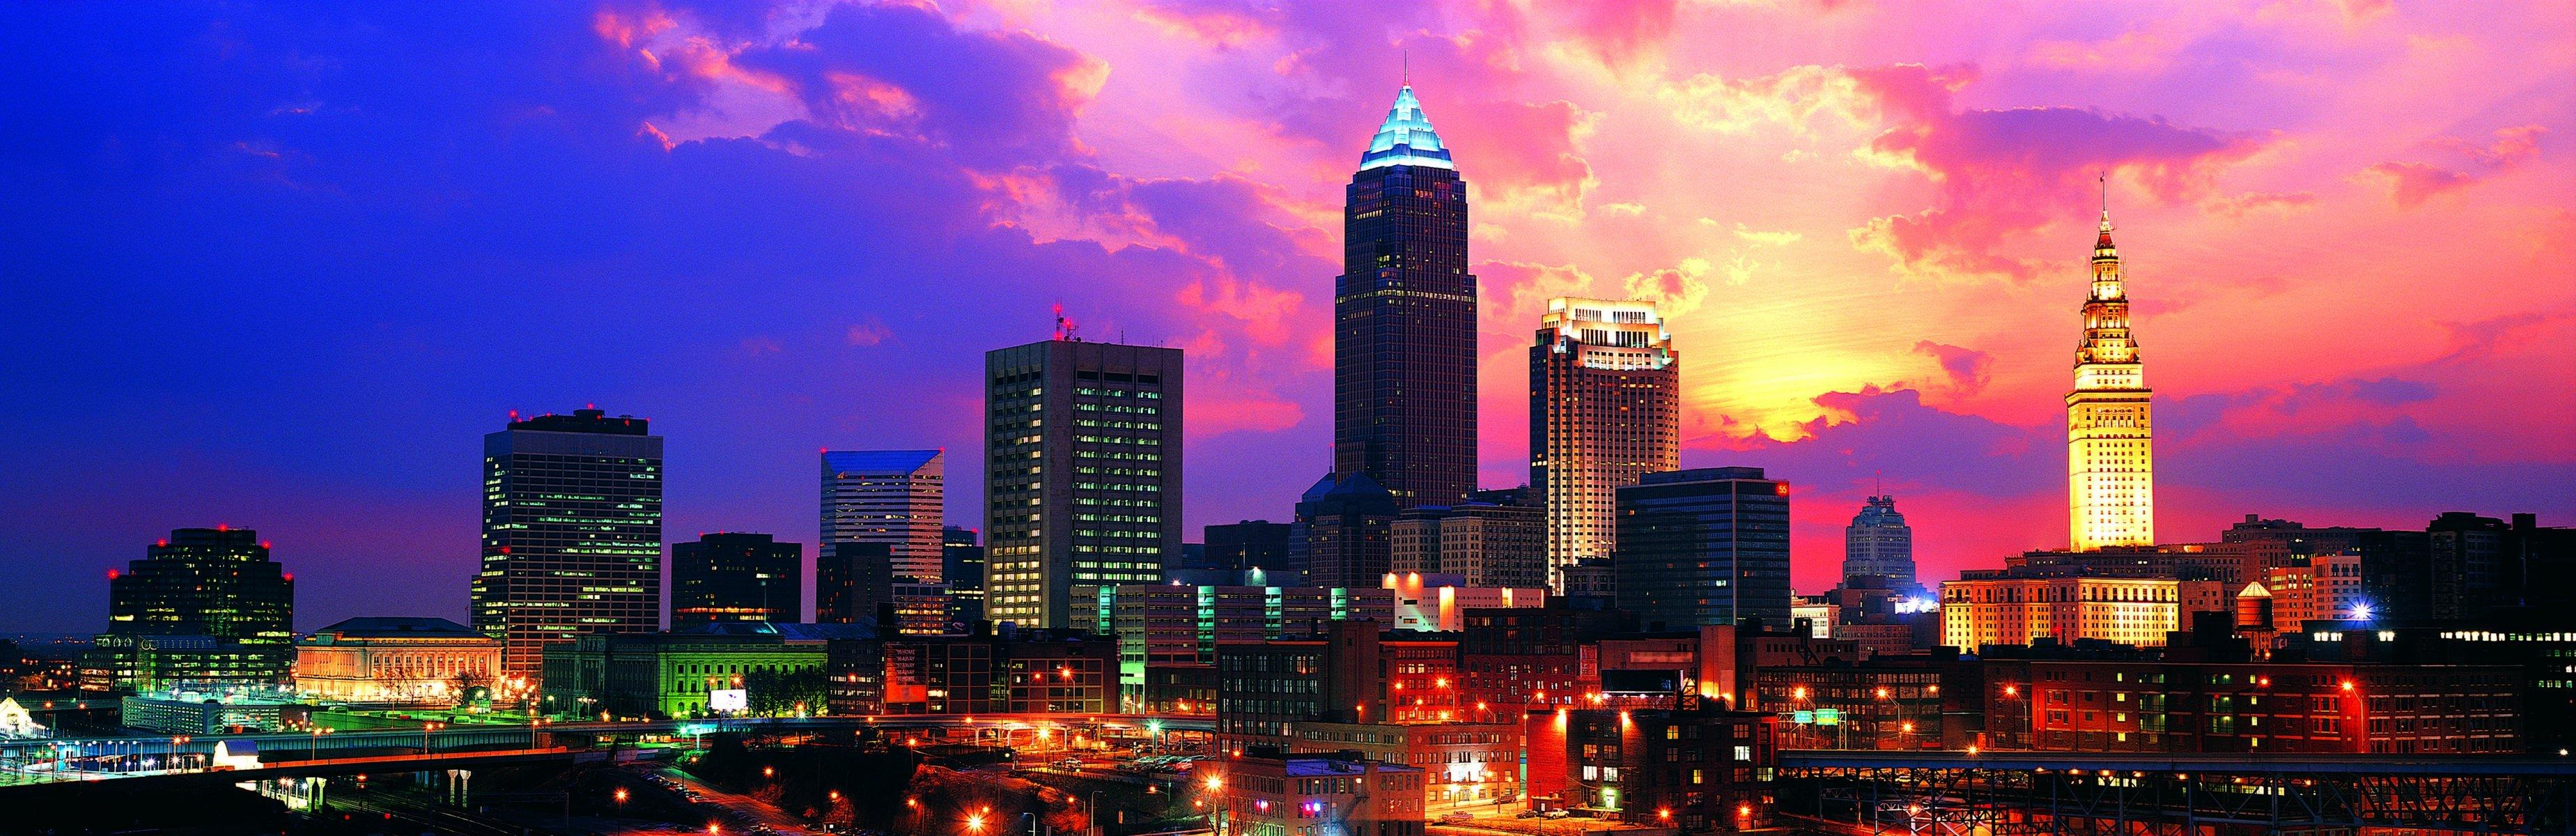 usa ohio cleveland city town HD wallpapers